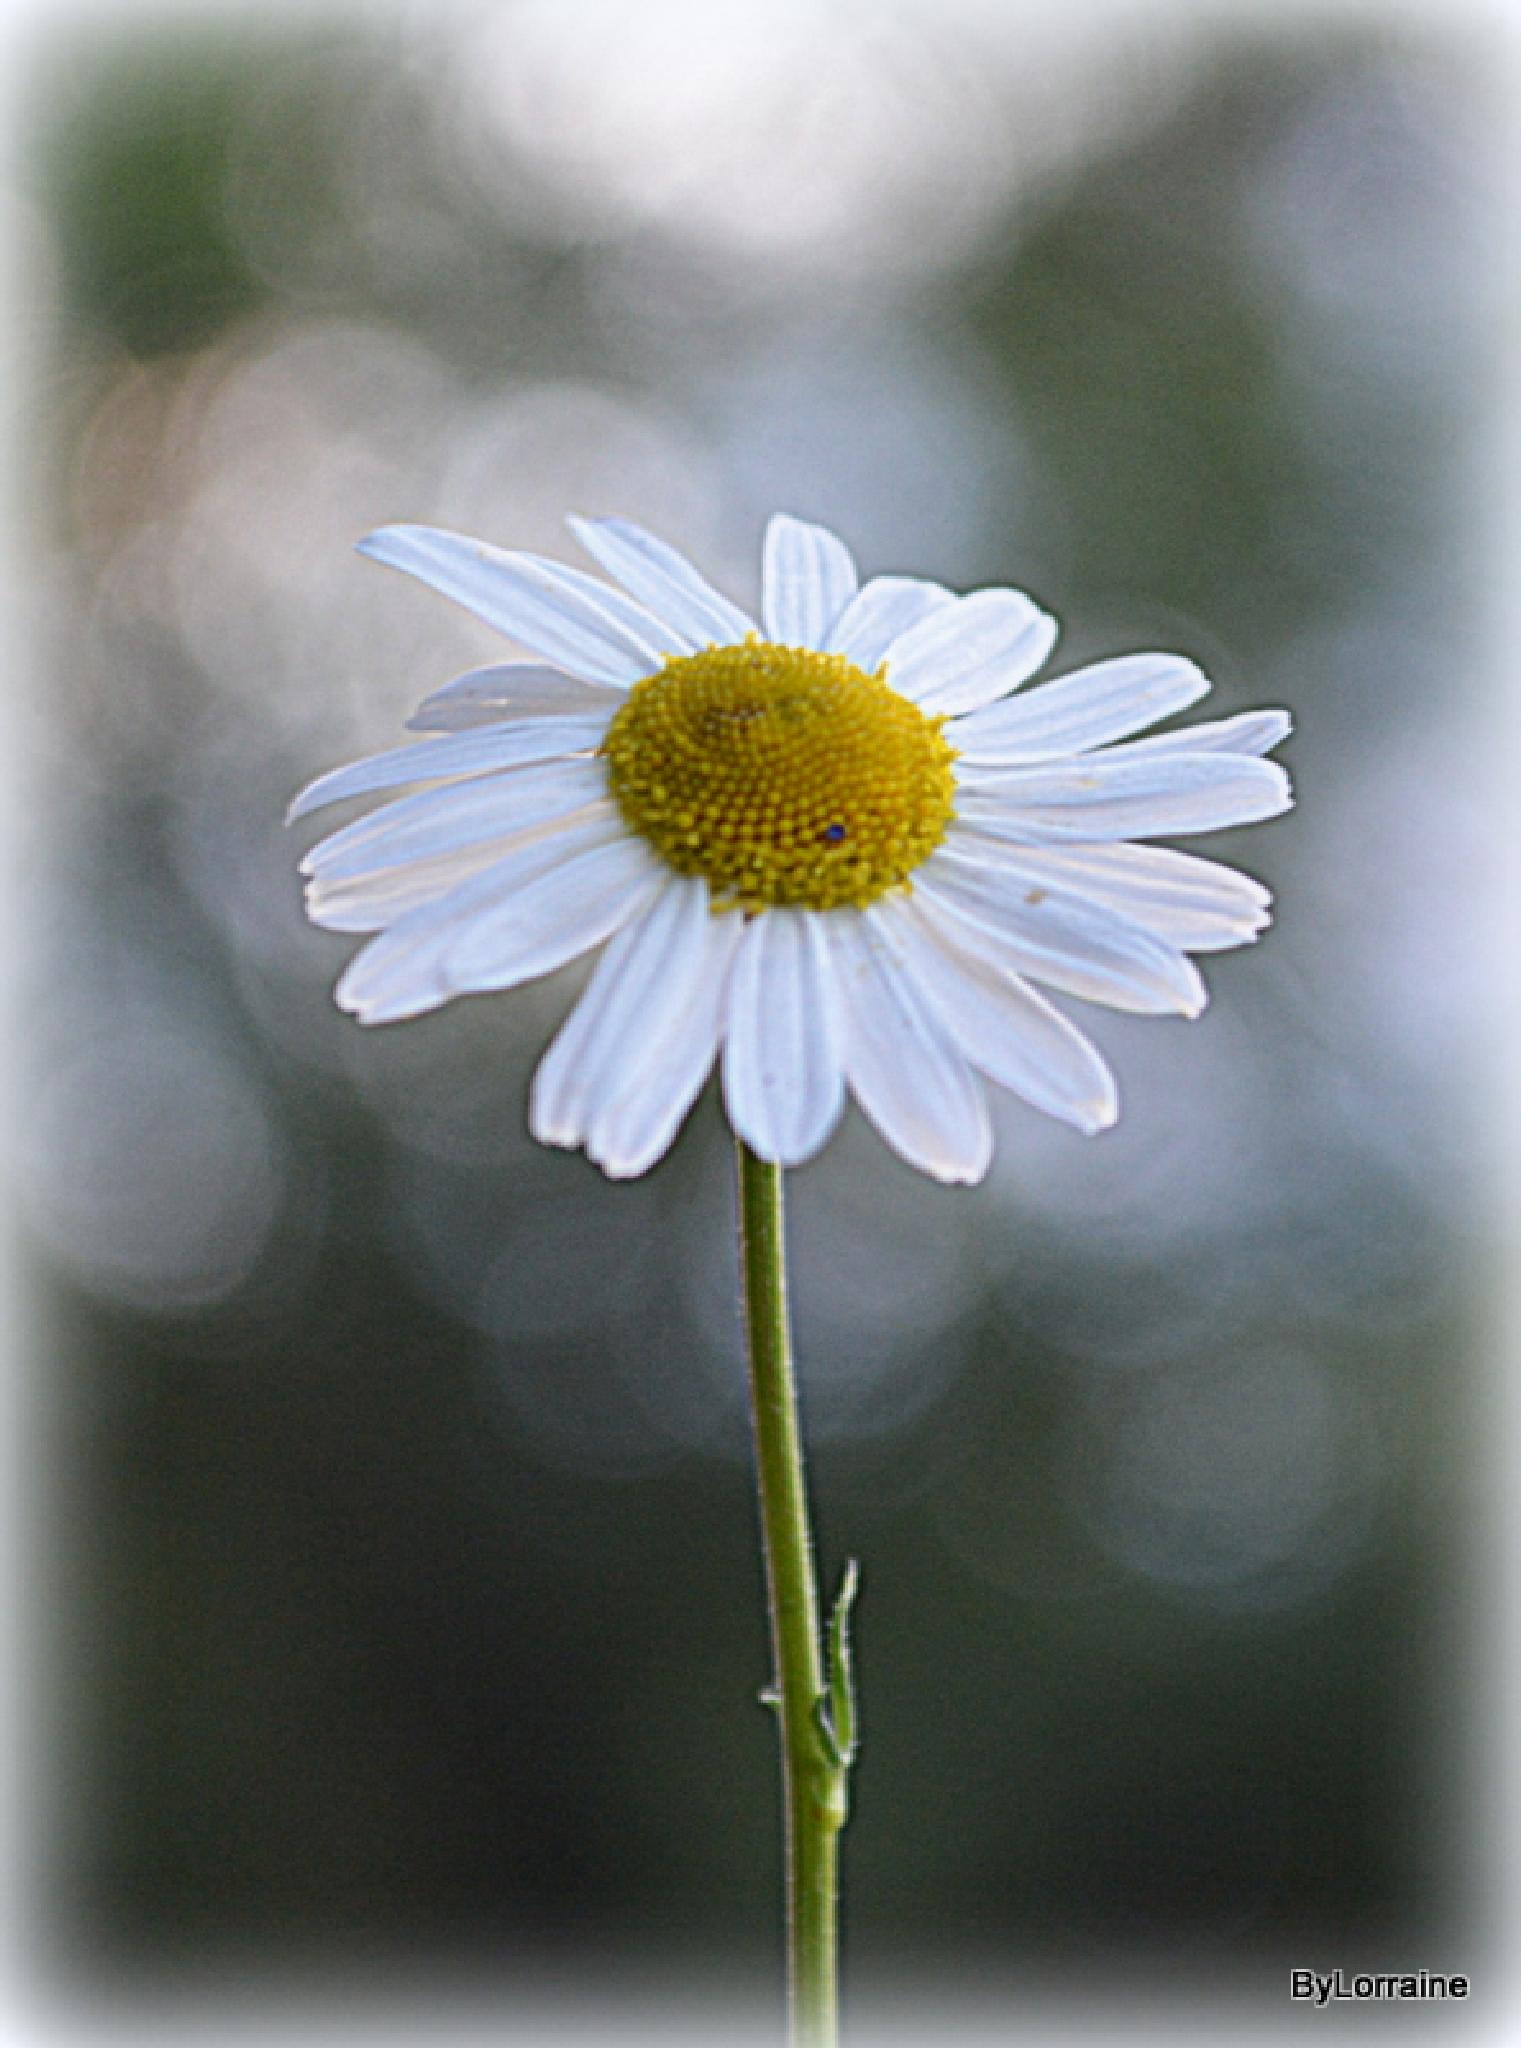 .. just a daisy by Lorraine. Sgt